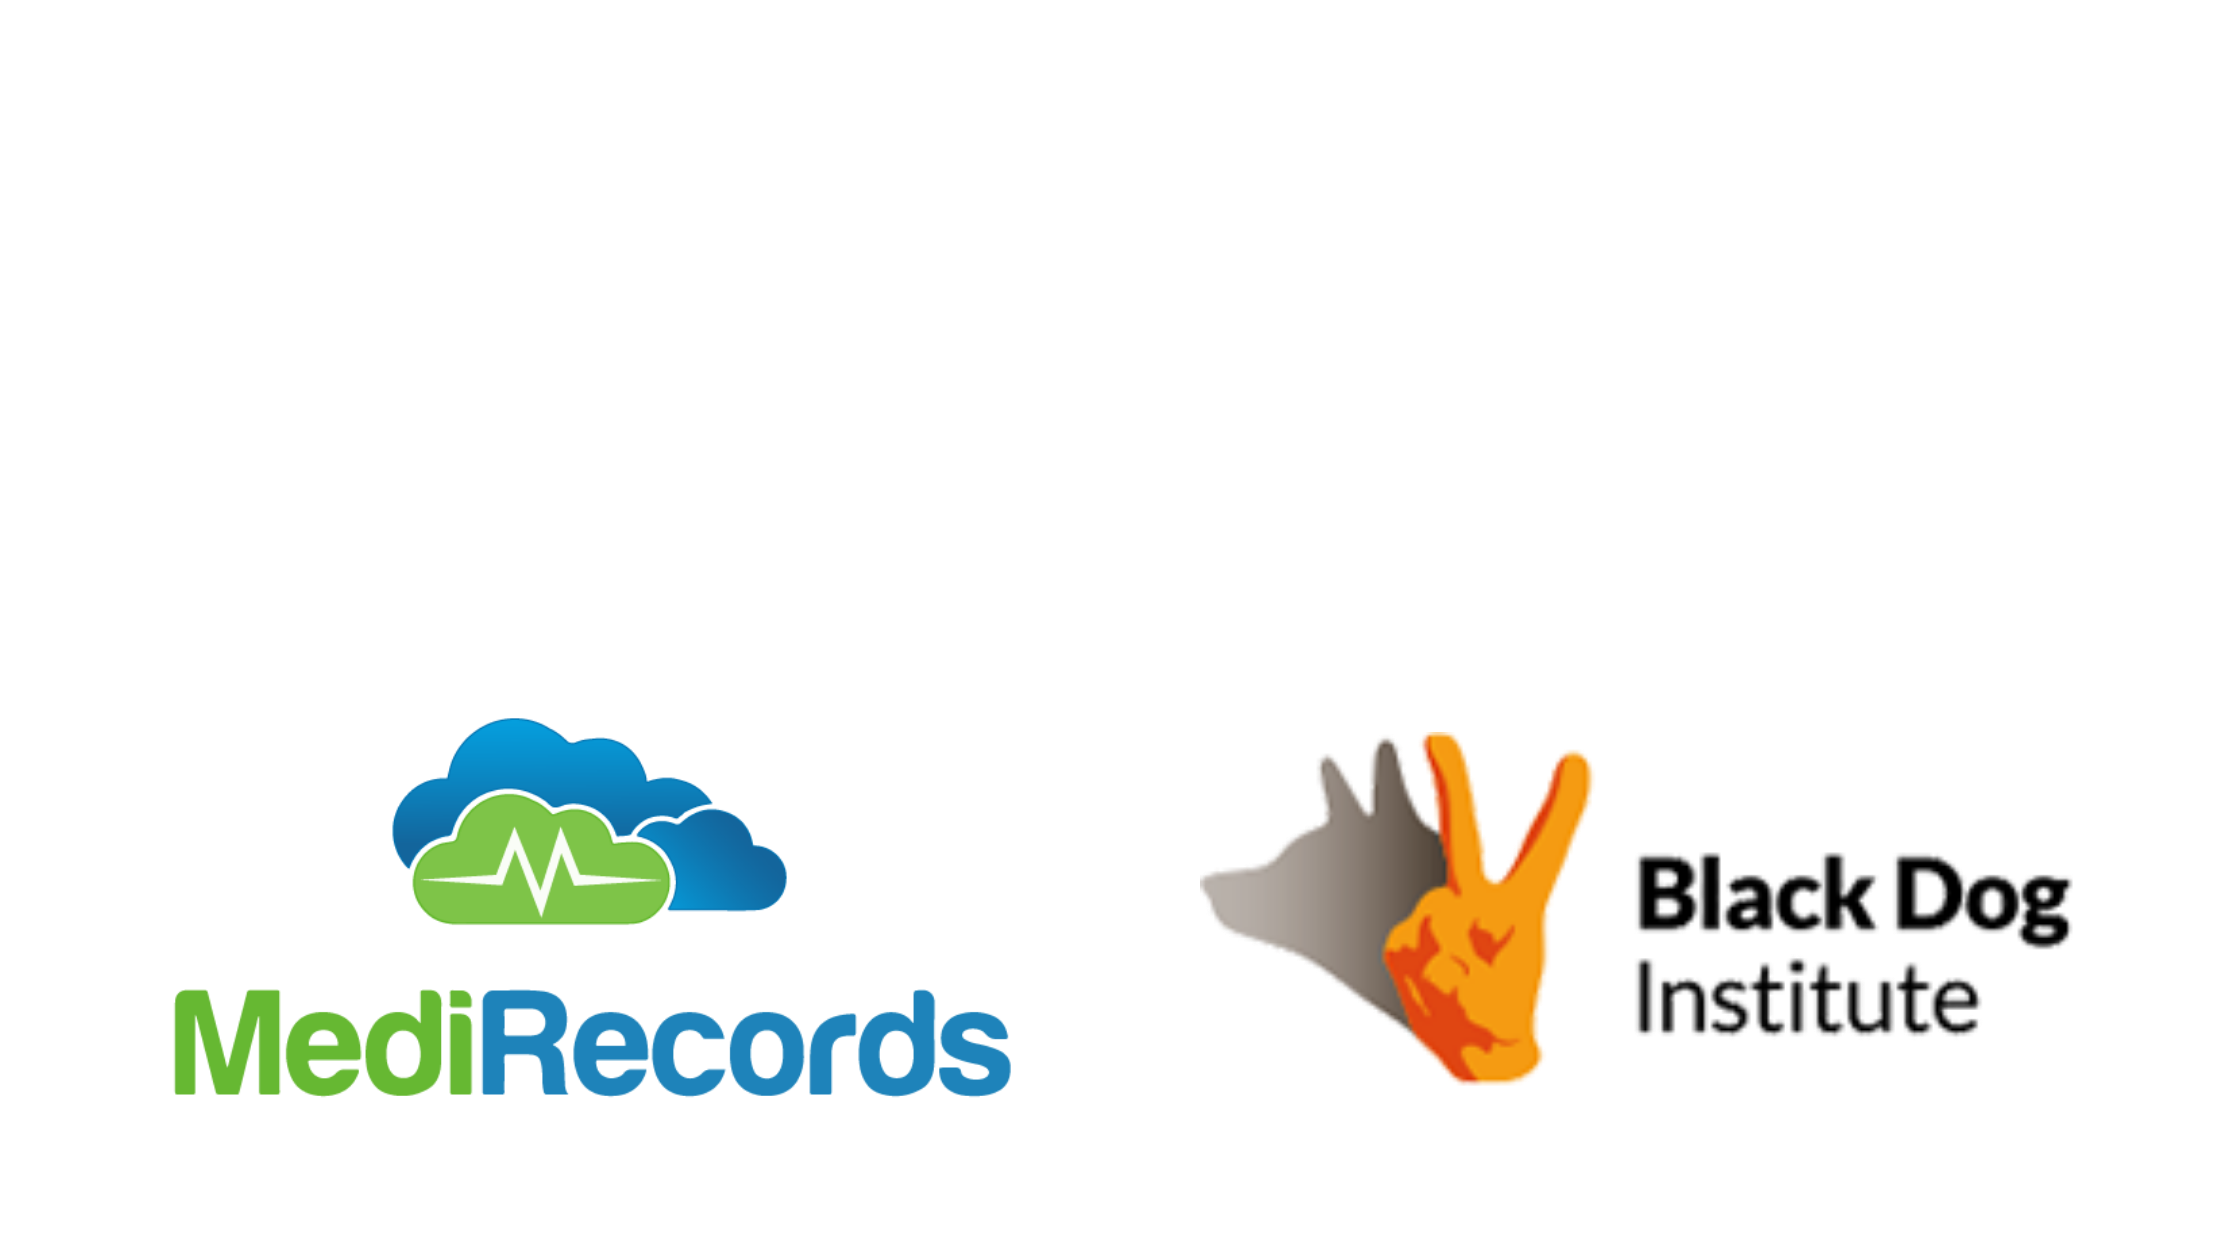 MediRecords BlackDog Institute announce partnership